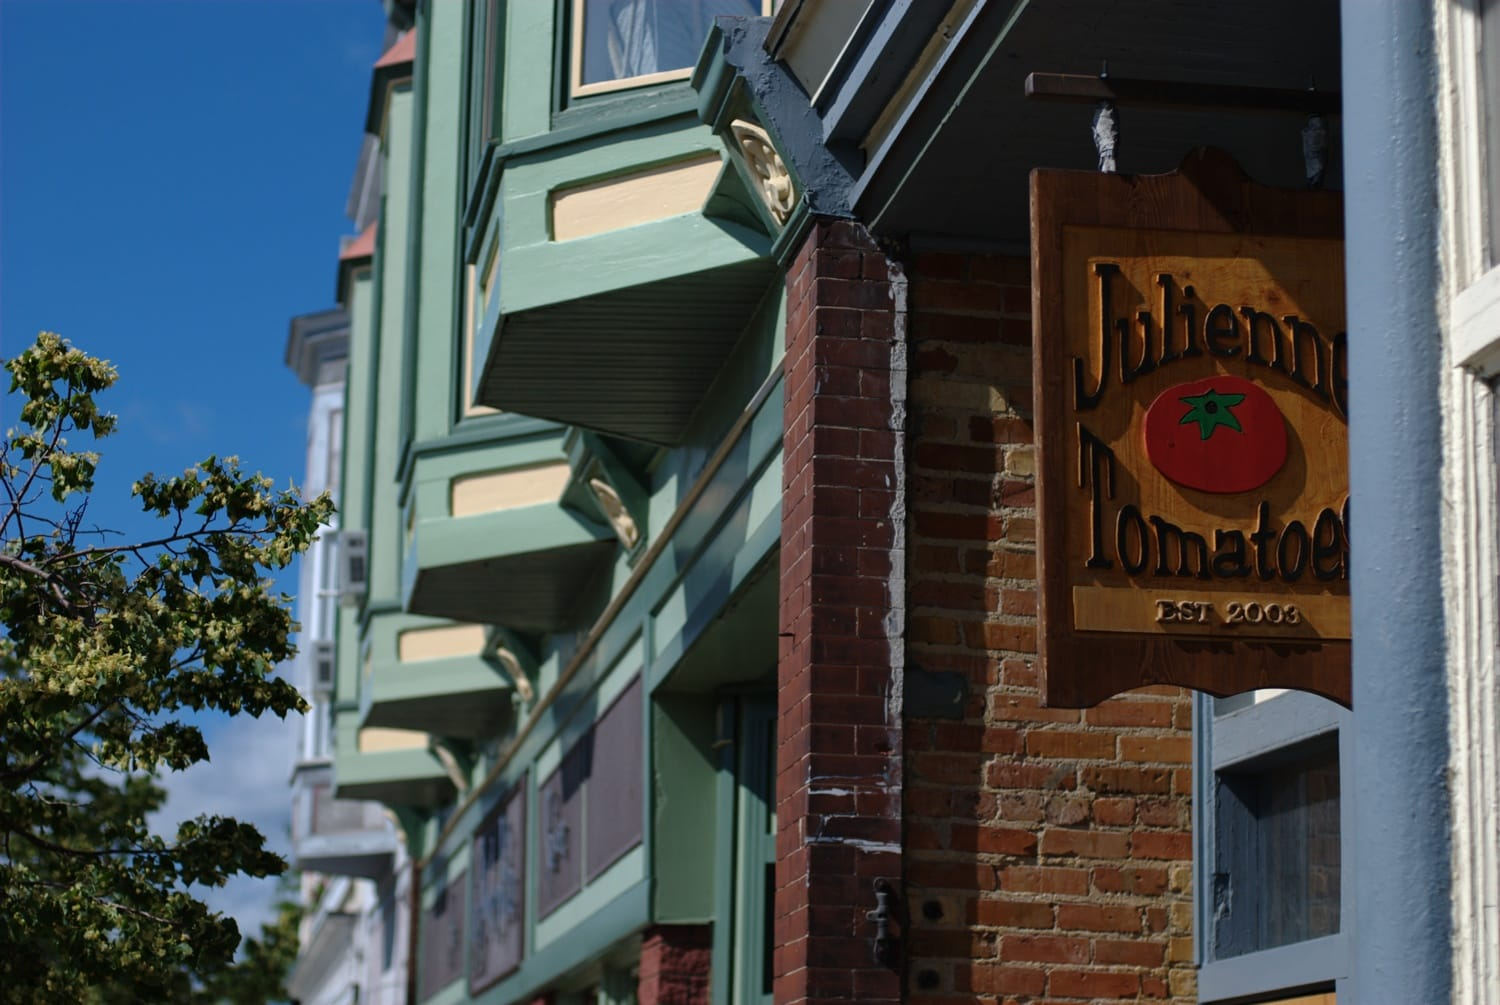 5 Tasty Spots For Breakfast And Lunch Near Petoskey Amp Harbor Springs Mynorth Com